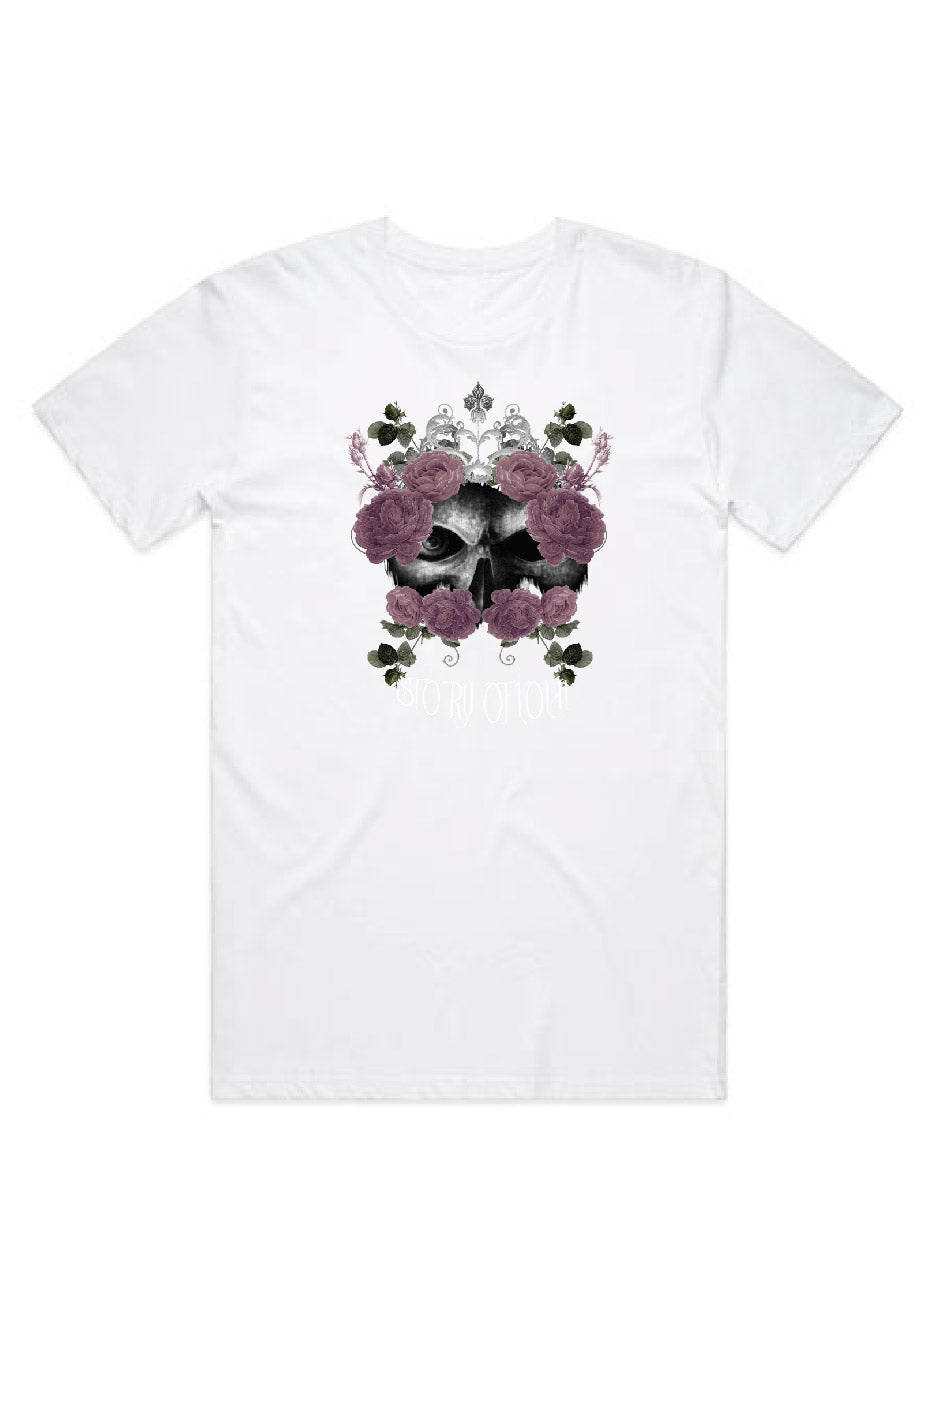 Super Size Skully T-Shirt - White